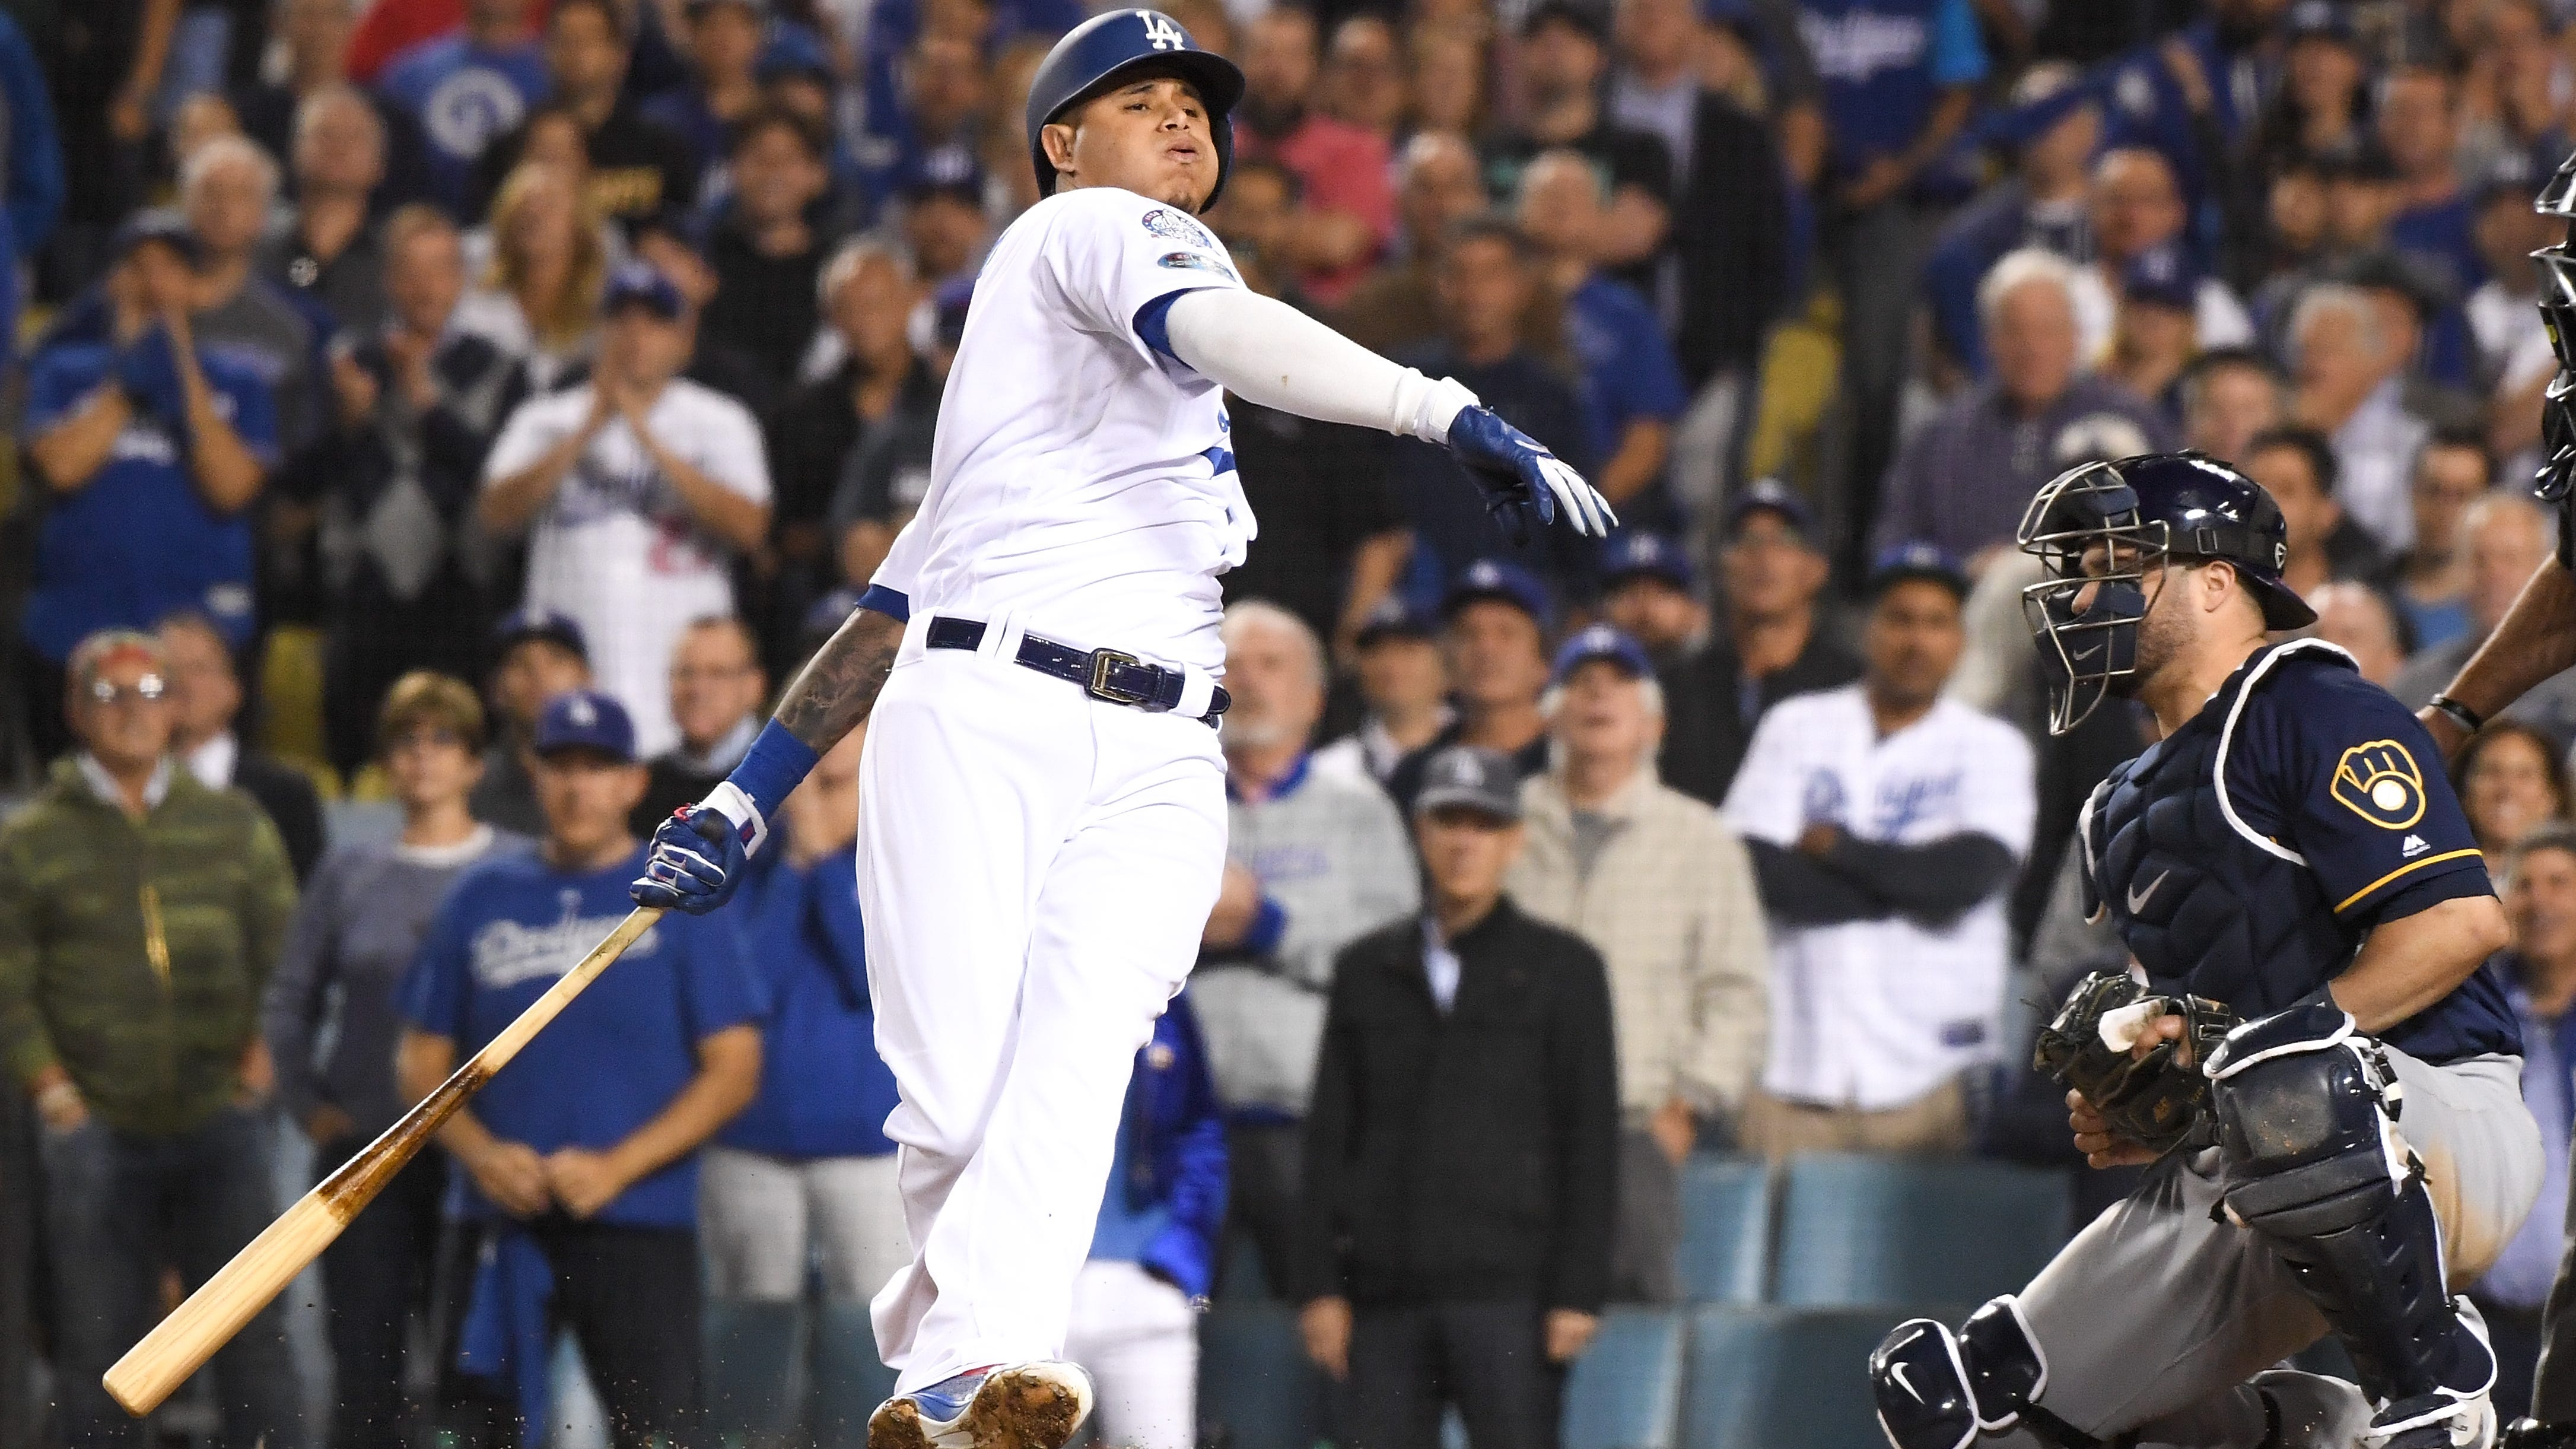 Power ranking the villains in the NLCS, and yes, Manny Macahdo surges to the top of the list